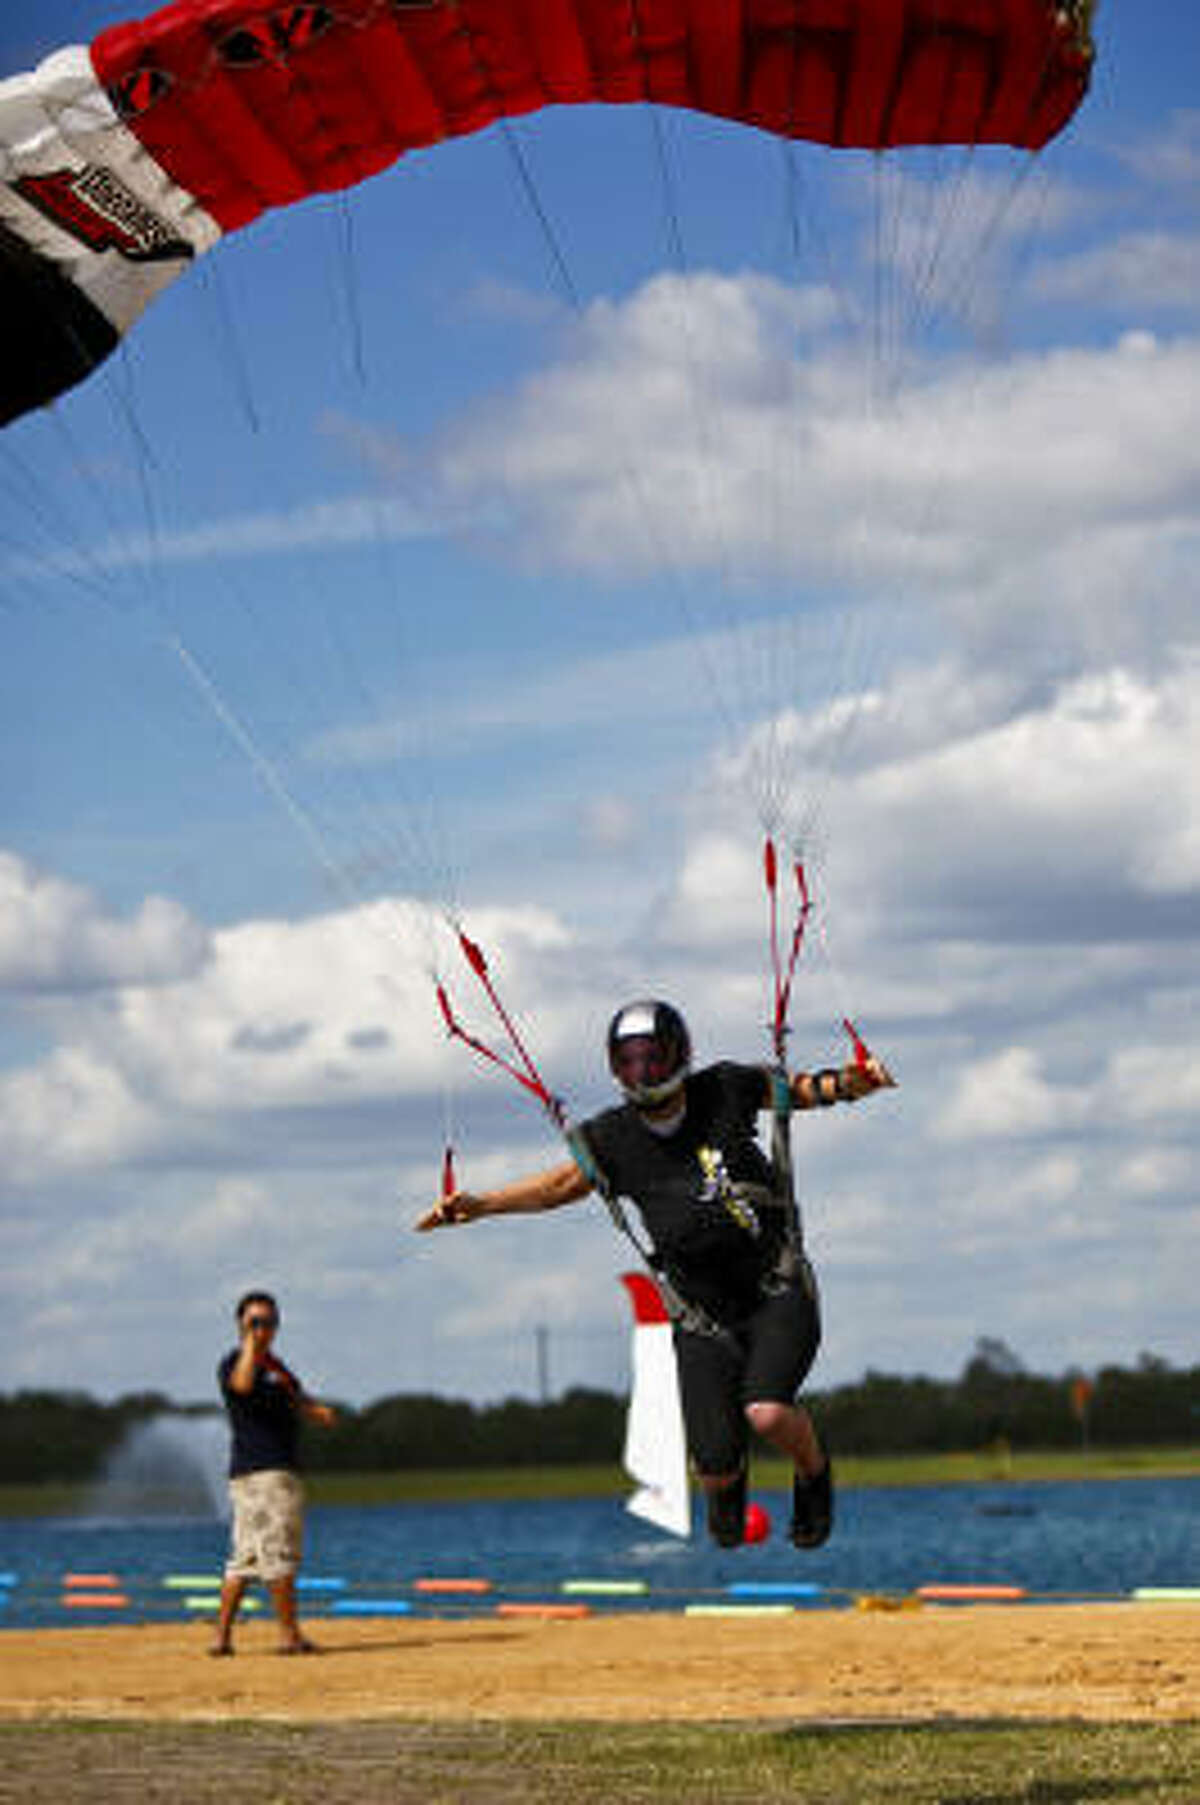 A competitor glides over the water during the swoop competition portion of the championships.